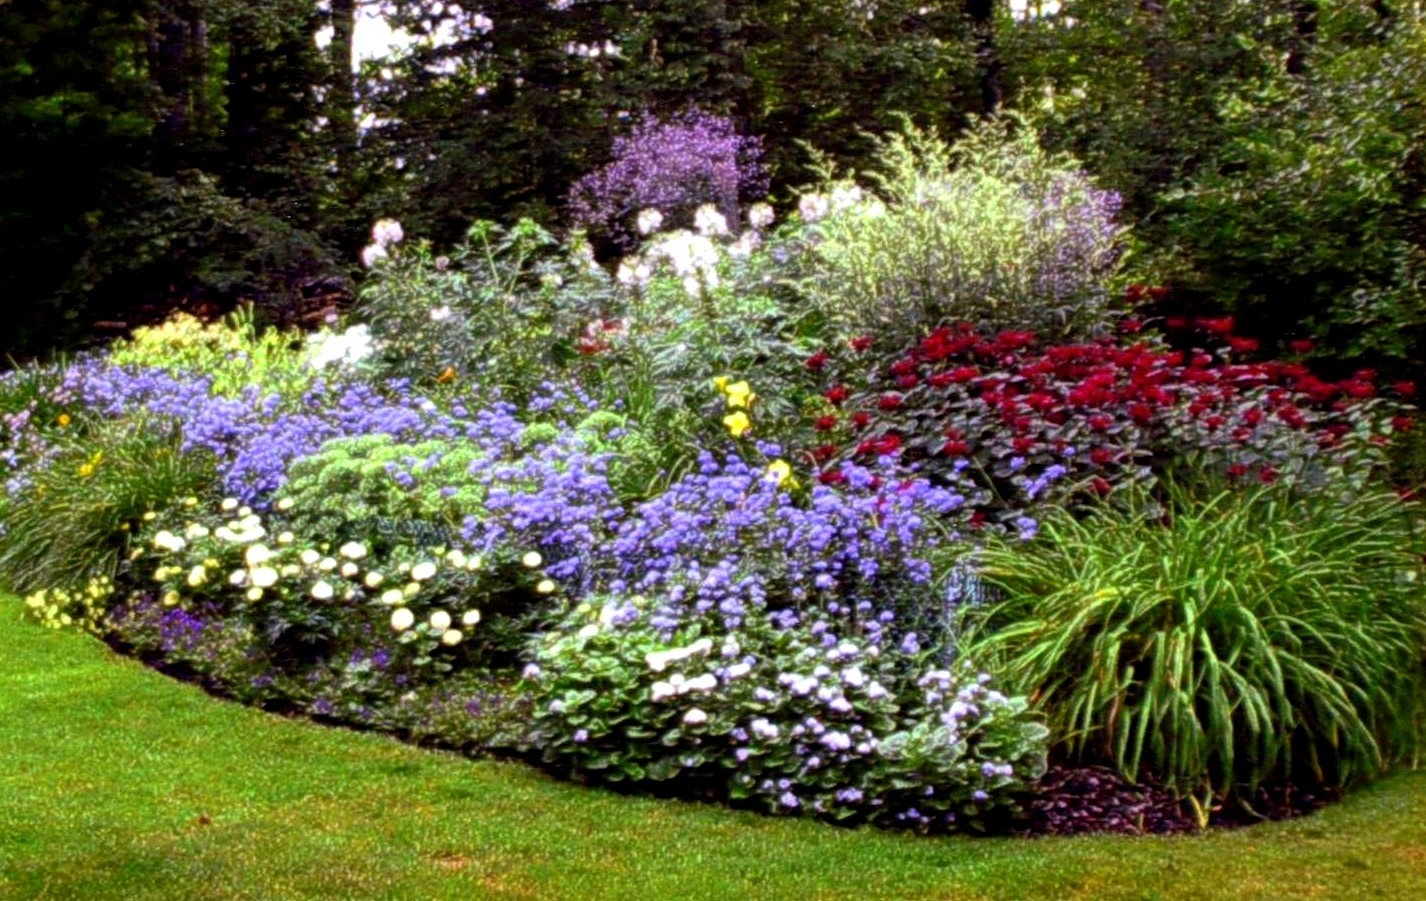 Landscaping Under Pine Trees Dying : Home Design - Landscaping Under inside Flower Garden Under Pine Trees